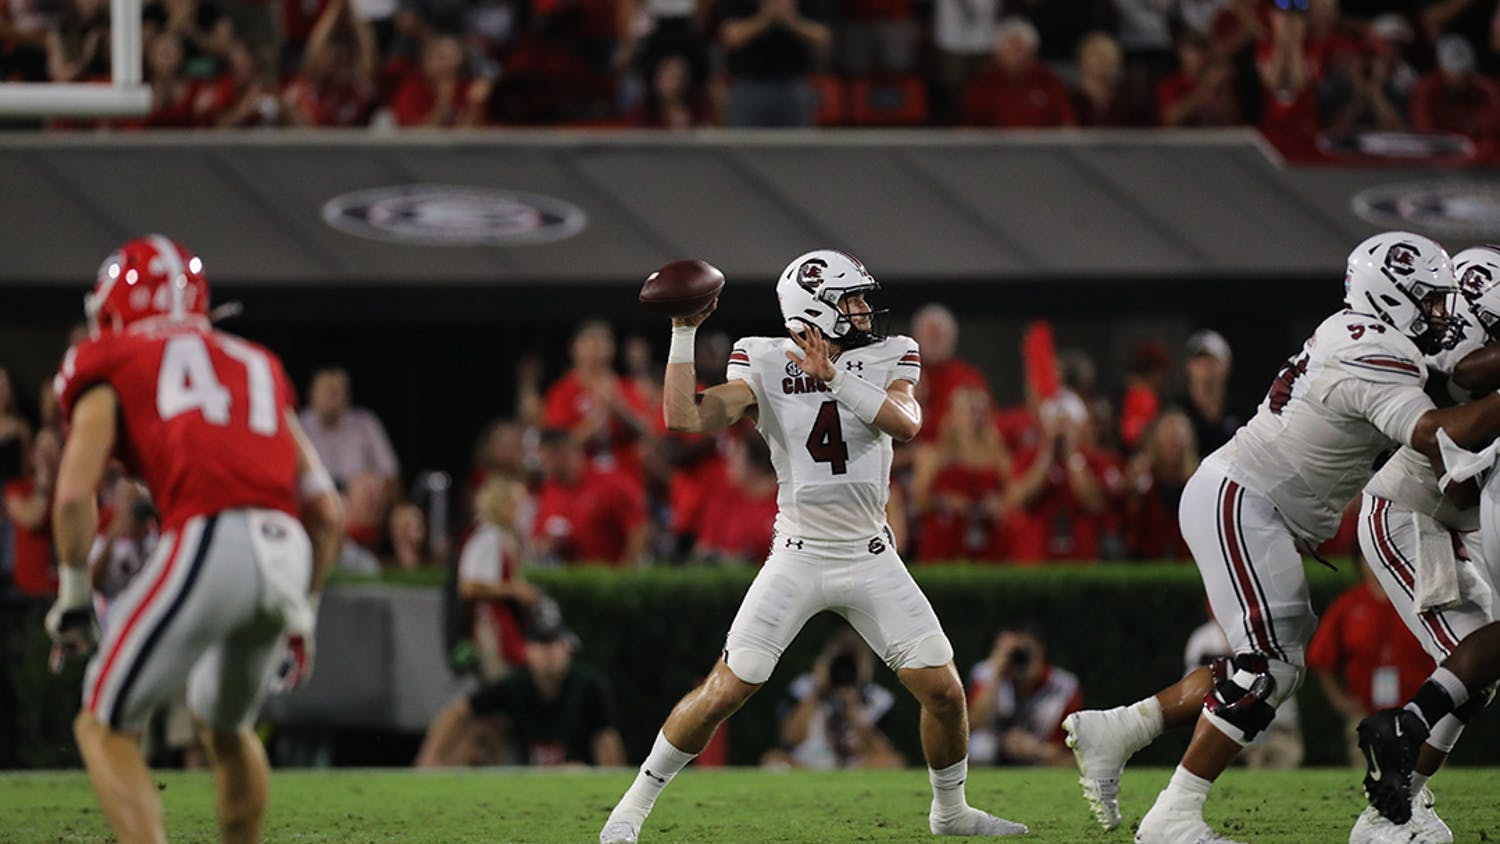 Sophomore quarterback Luke Doty searches for an open receiver downfield on Sept. 18, 2021. This game against the Georgia Bulldogs resulted in a loss for the Gamecocks.